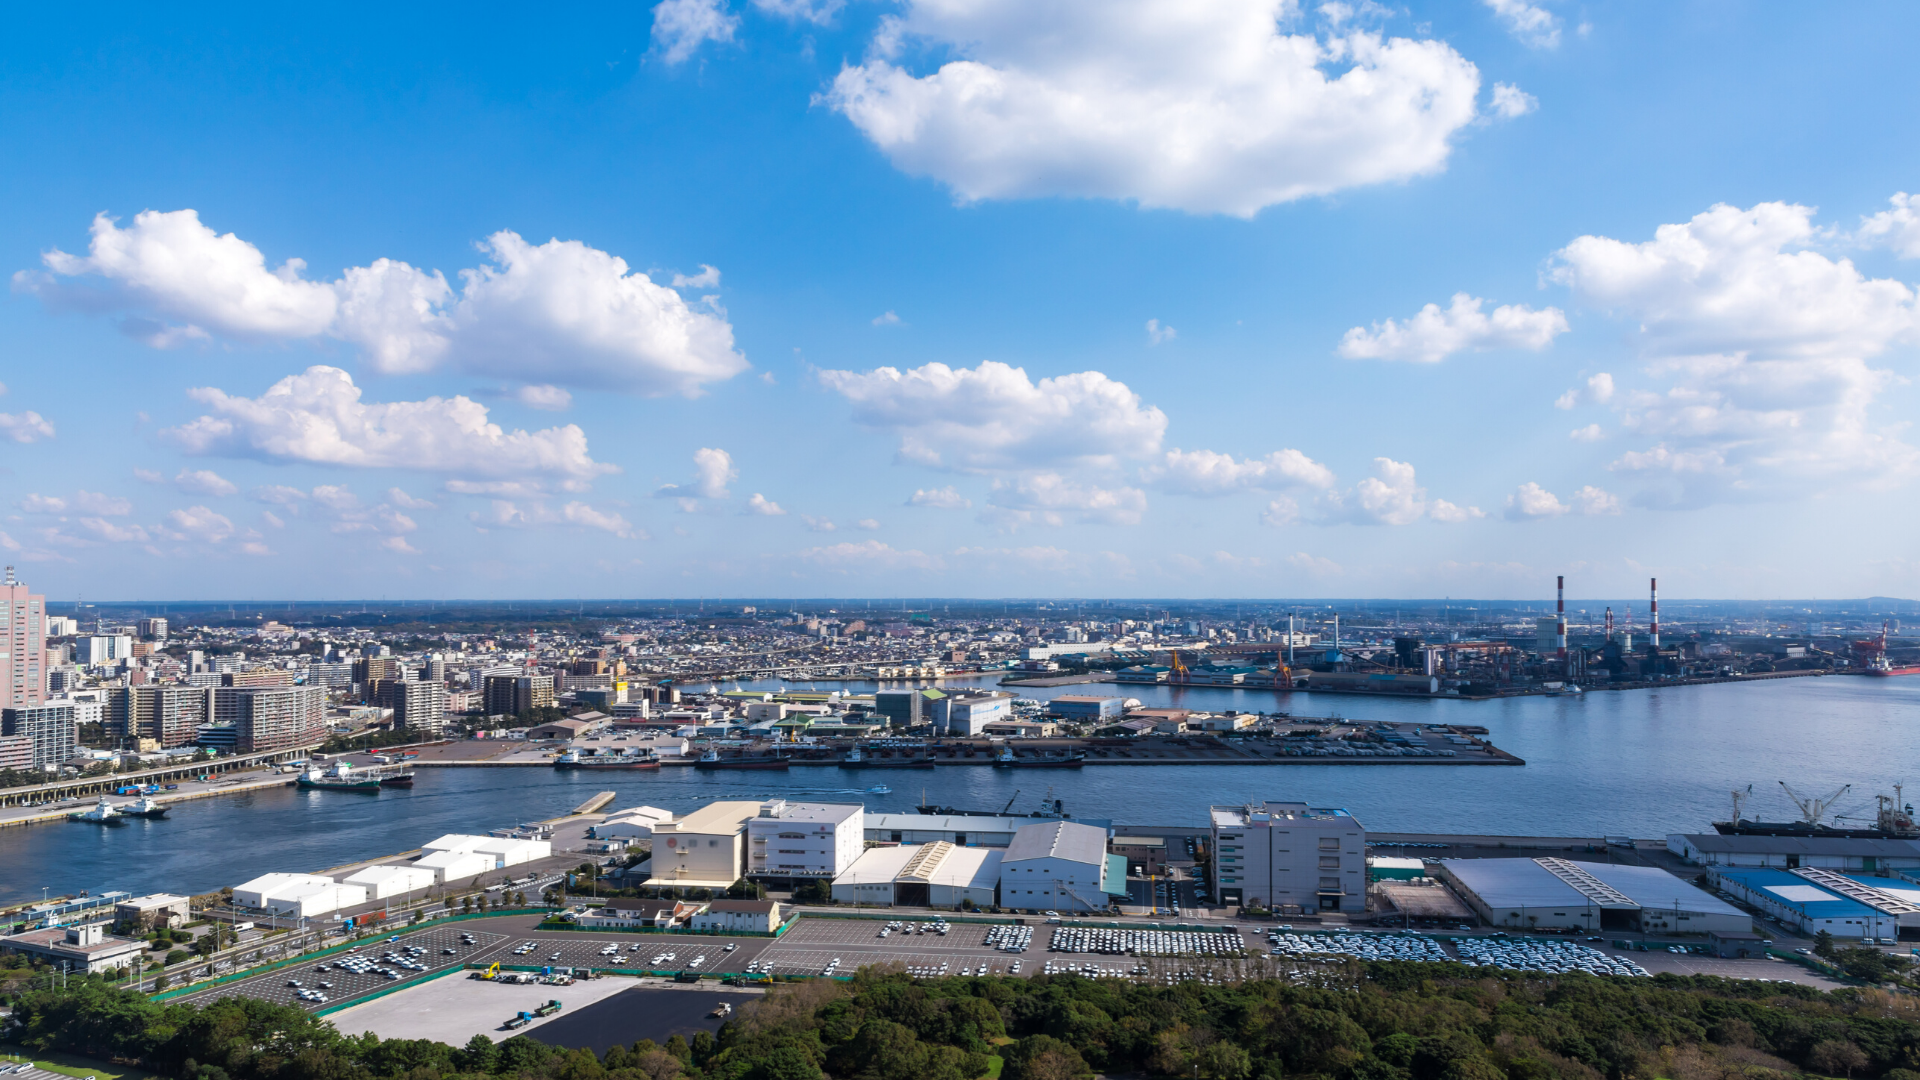 chiba prefecture Ultimate guide to choosing where to live